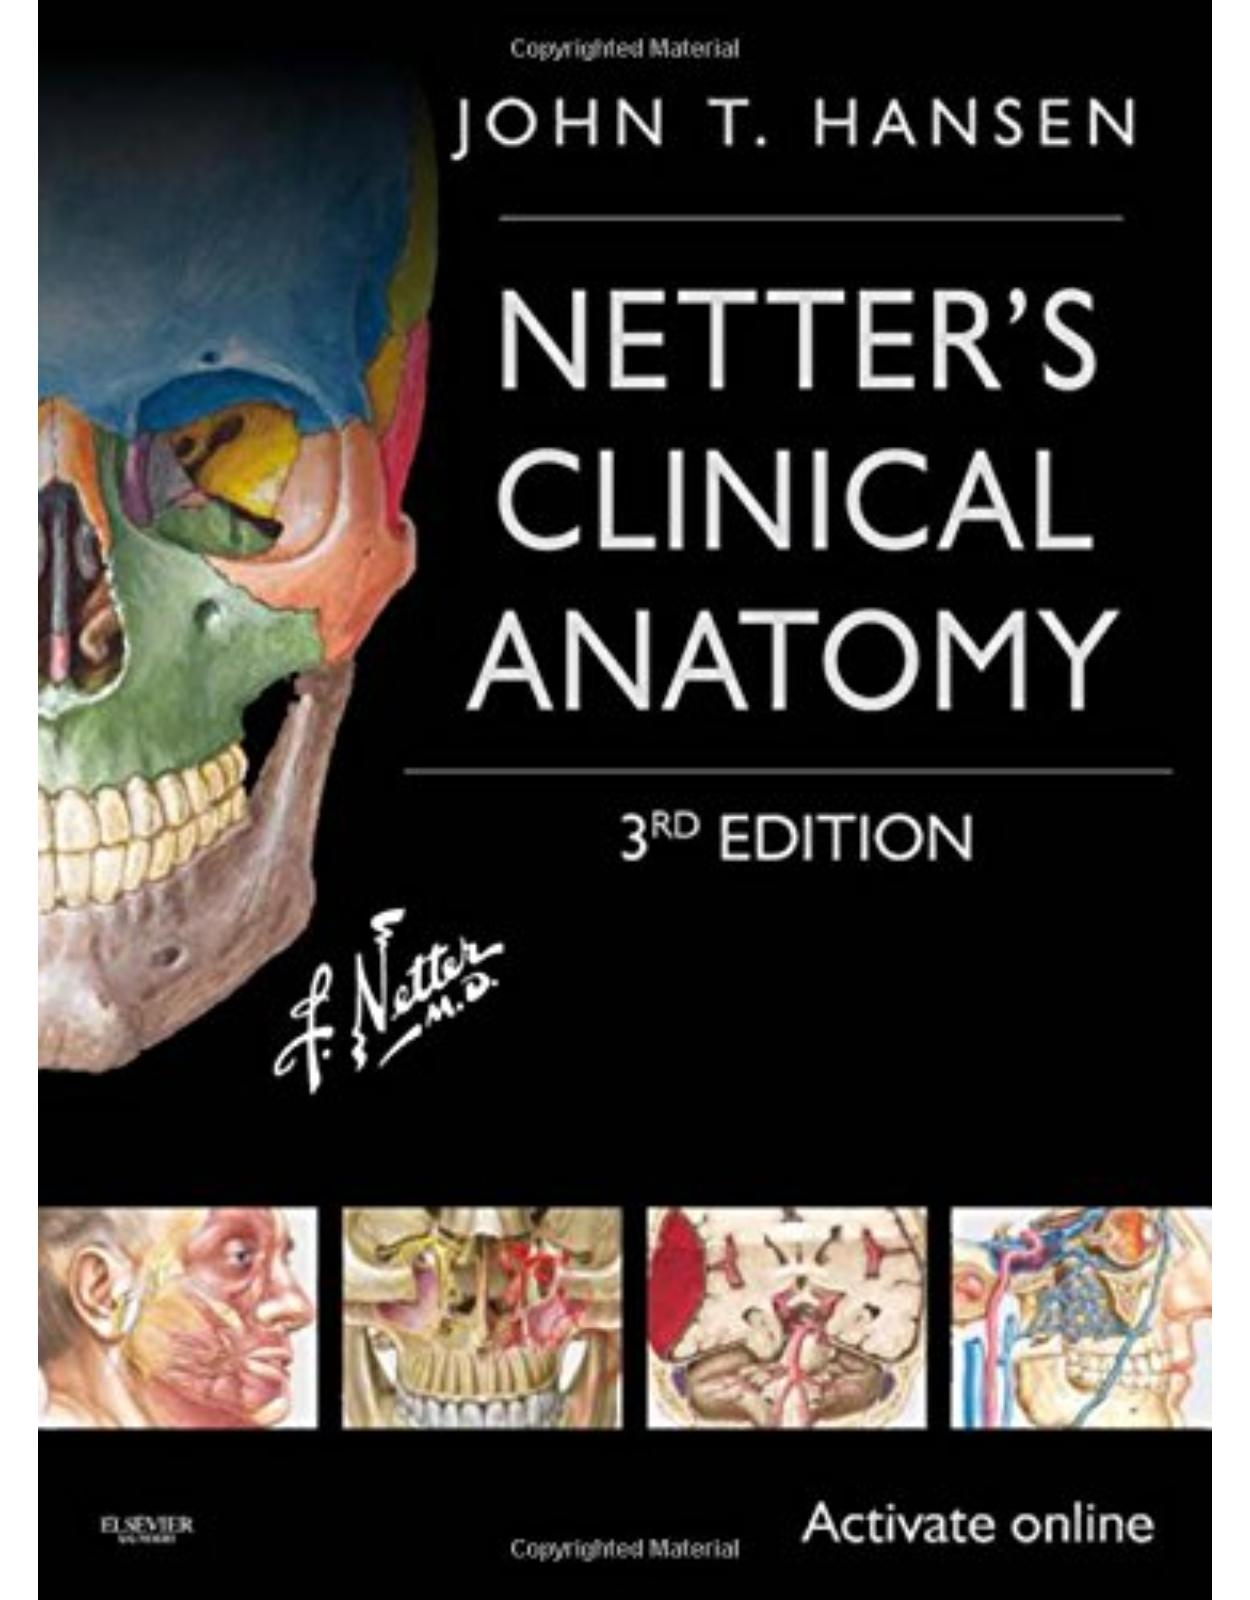 Netter's Clinical Anatomy, 3rd Edition